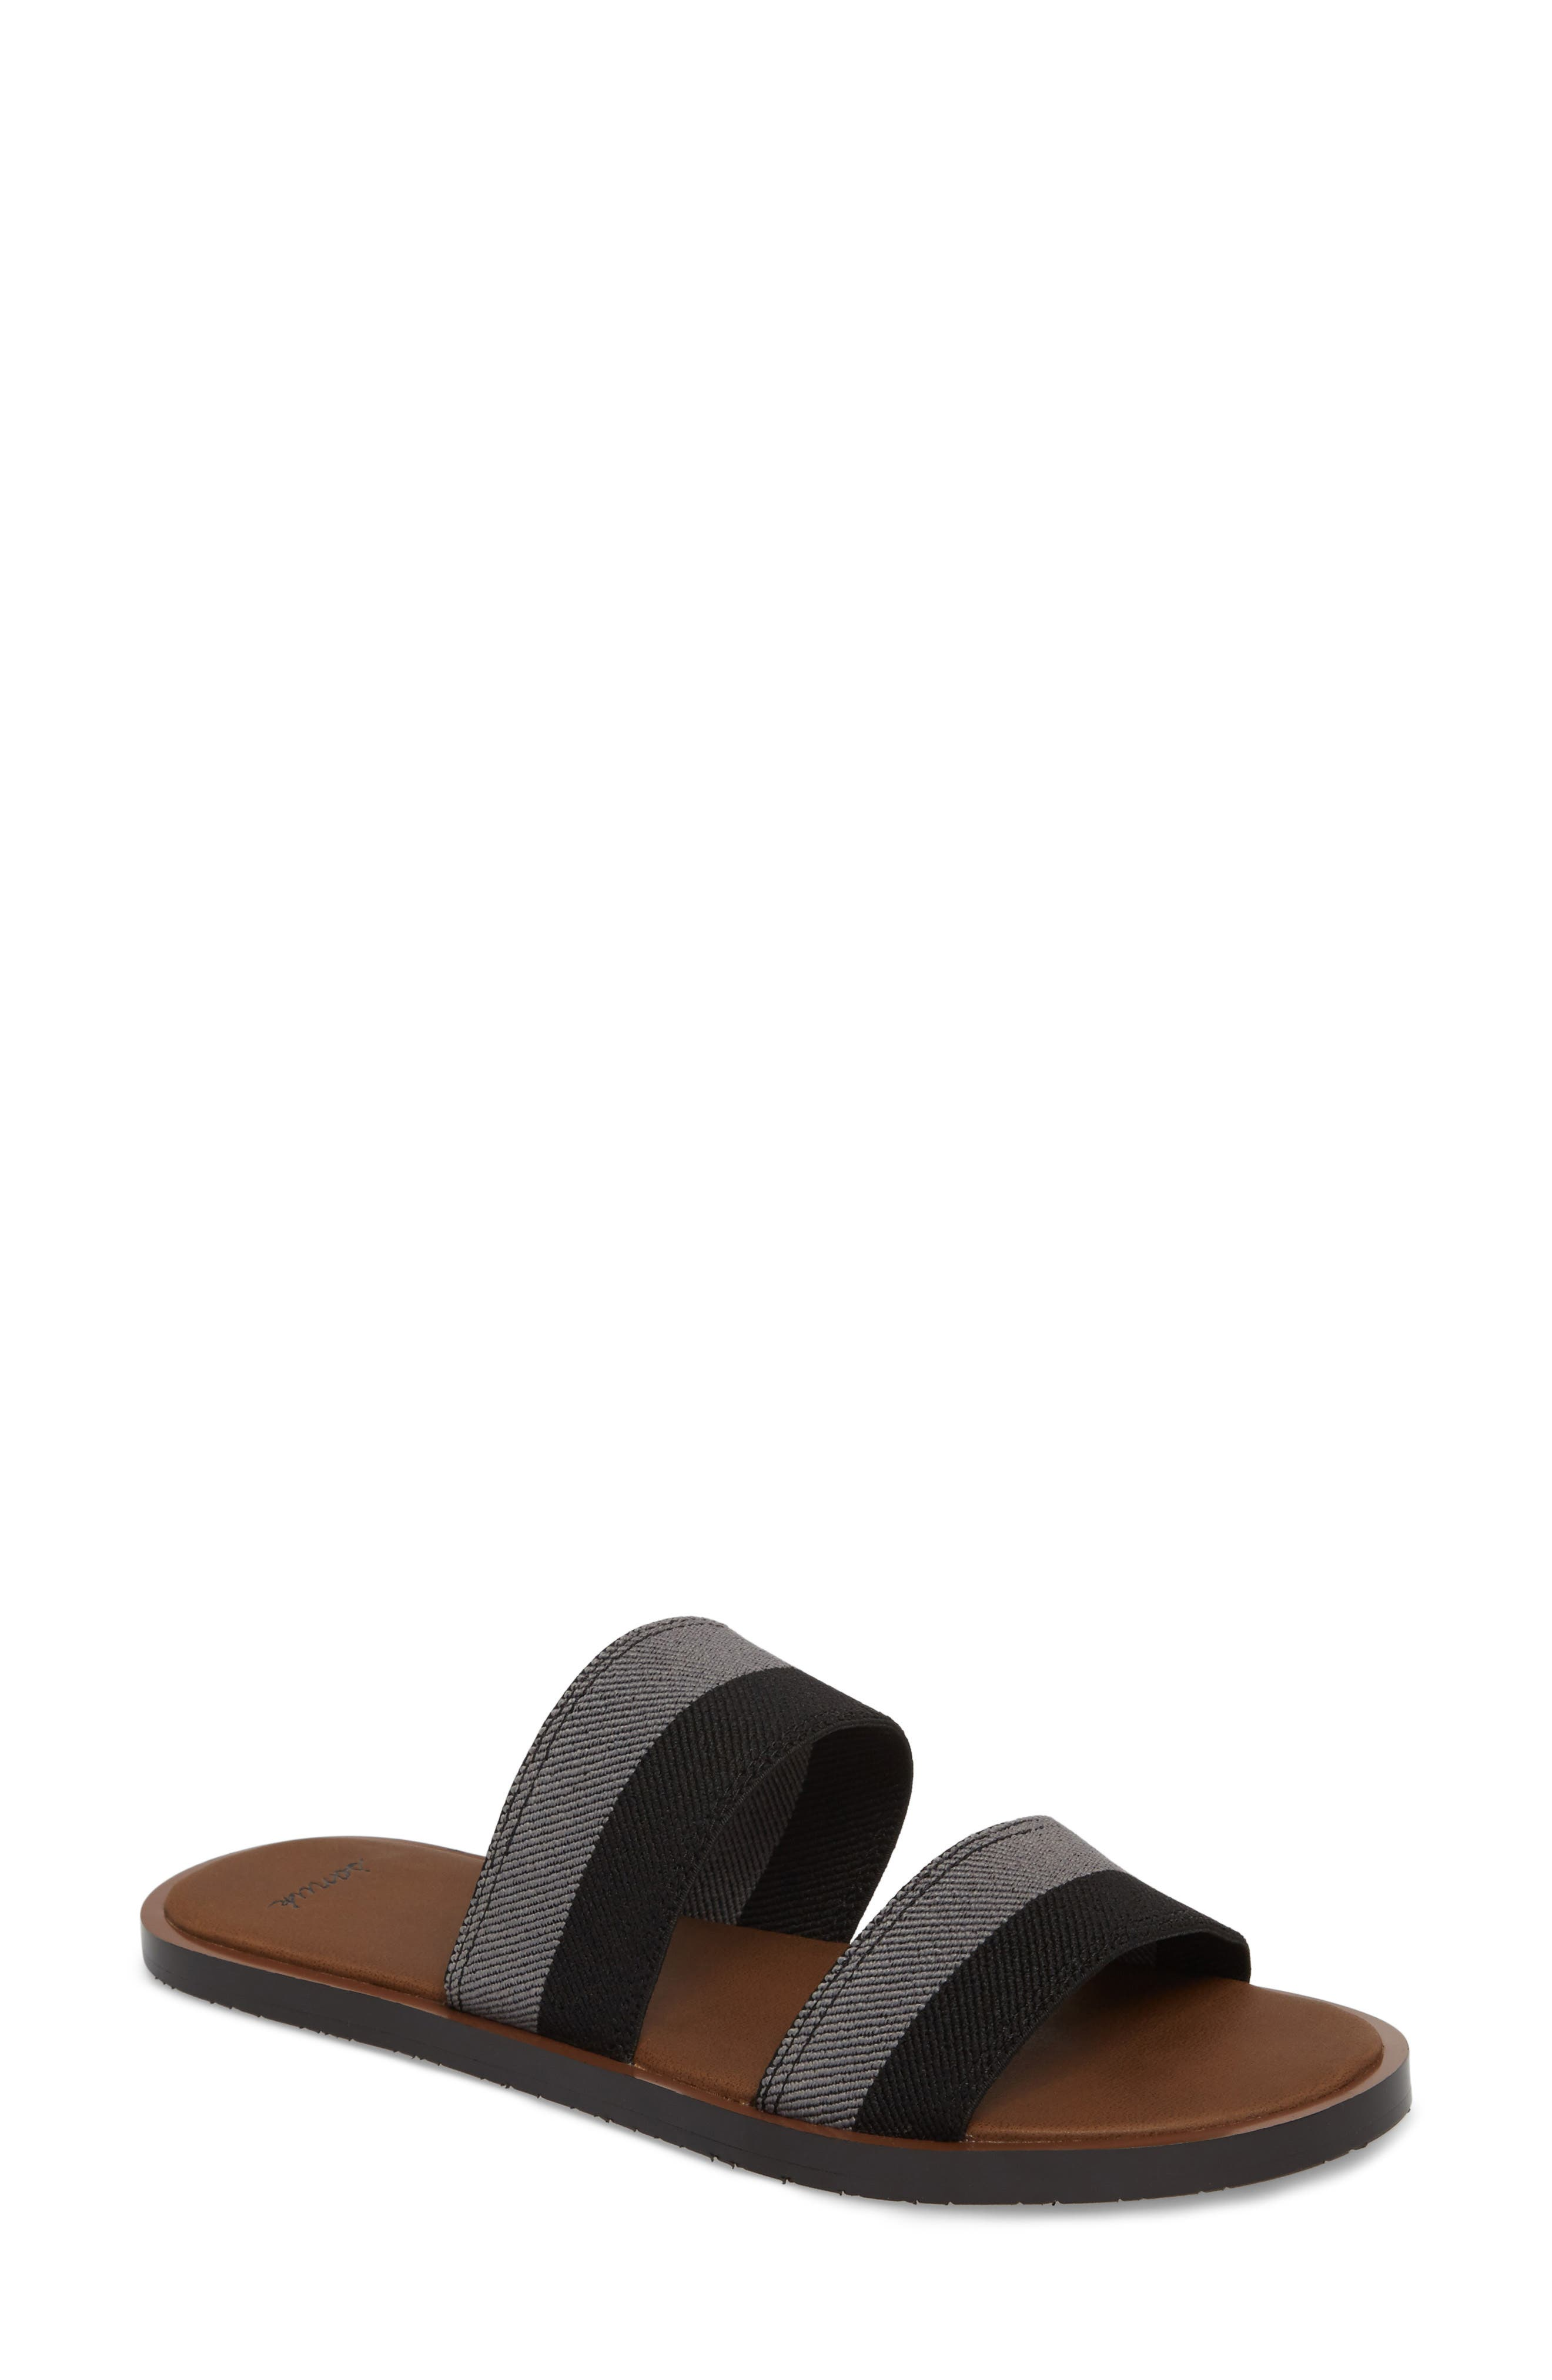 reliable sanuk at flip yoga comfort mats women step foot from chakra flop time into one lightenment pace mat black a